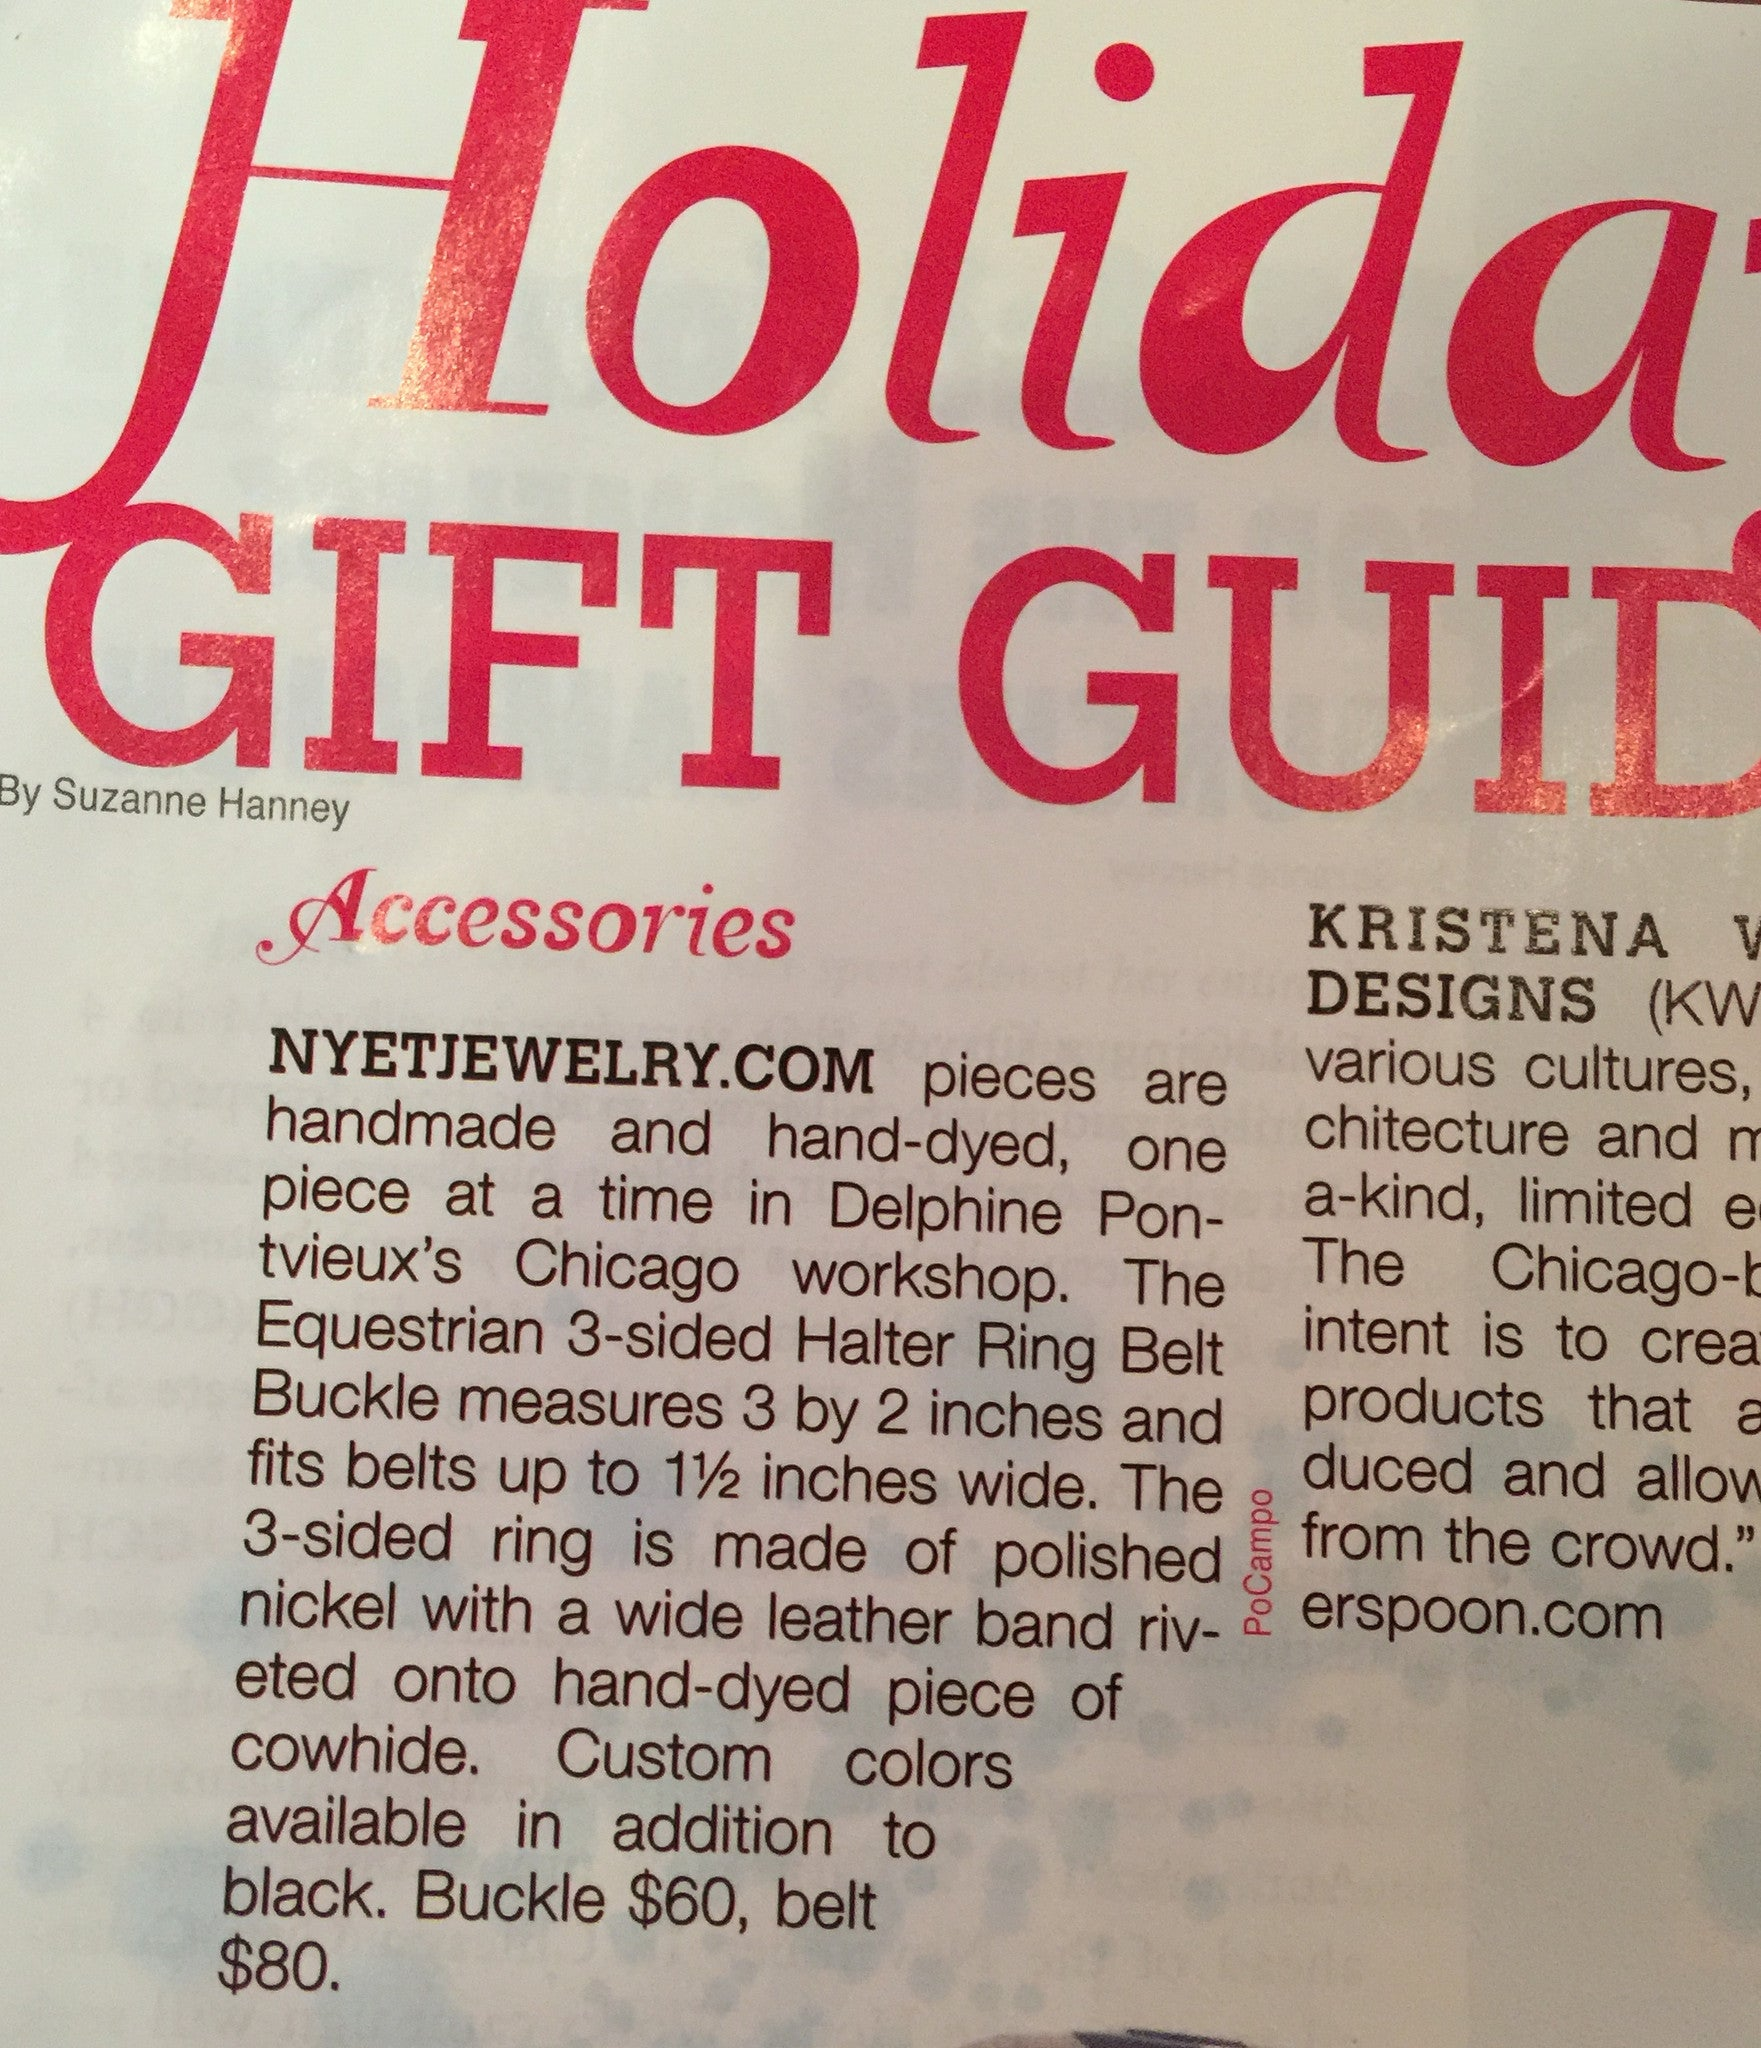 Nyet Jewelry in Streetwise Chicago Holiday Gift Guide issue